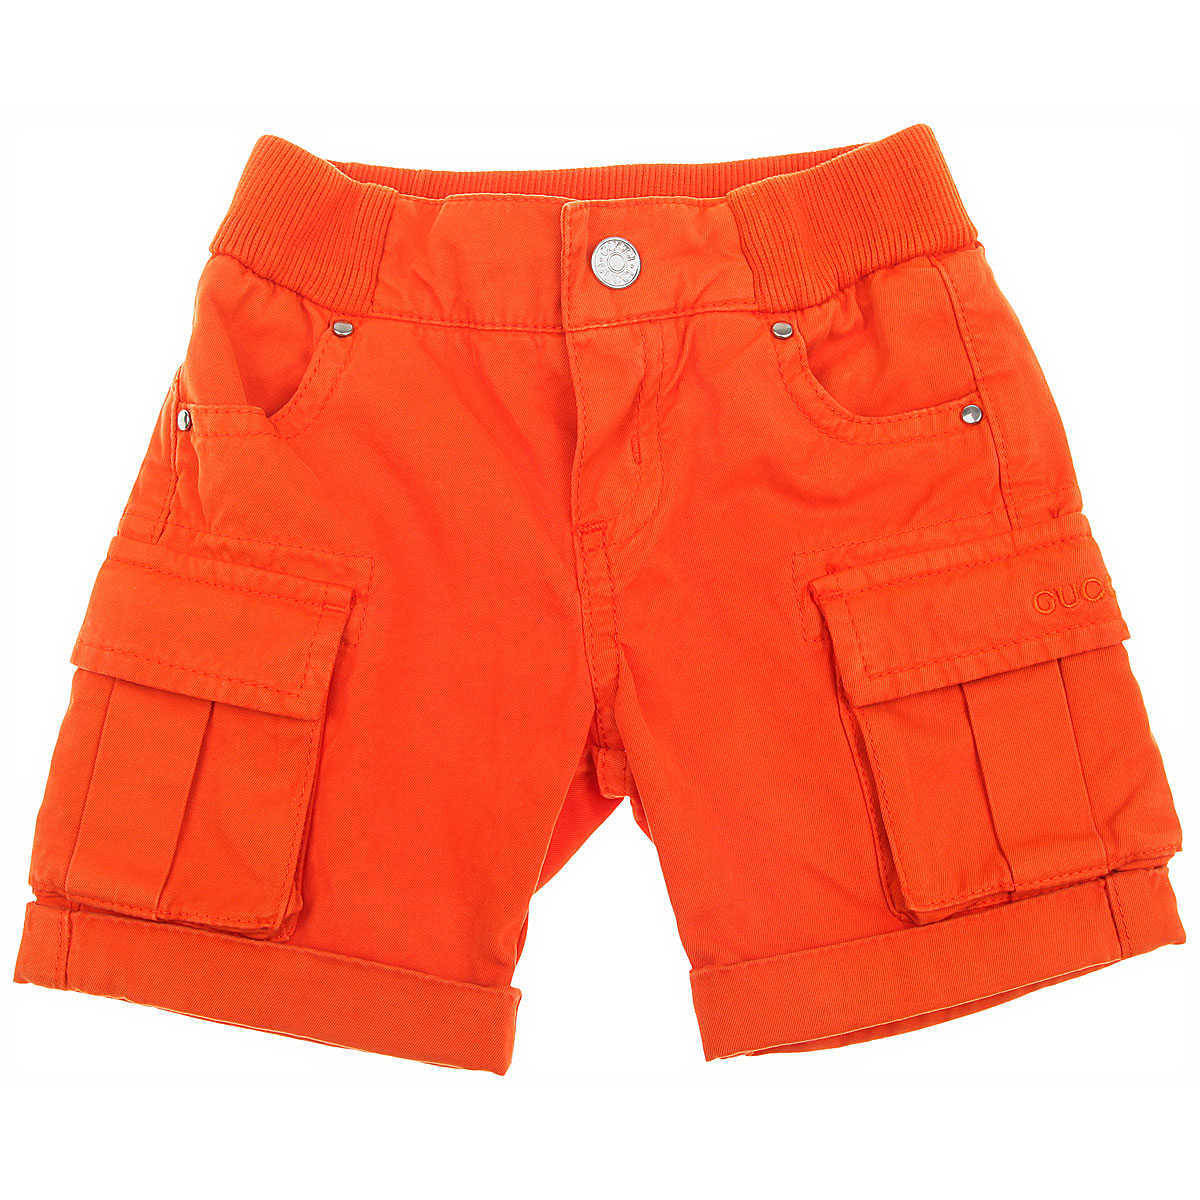 Gucci Baby Shorts for Boys On Sale in Outlet Orange - GOOFASH - Mens SHORTS